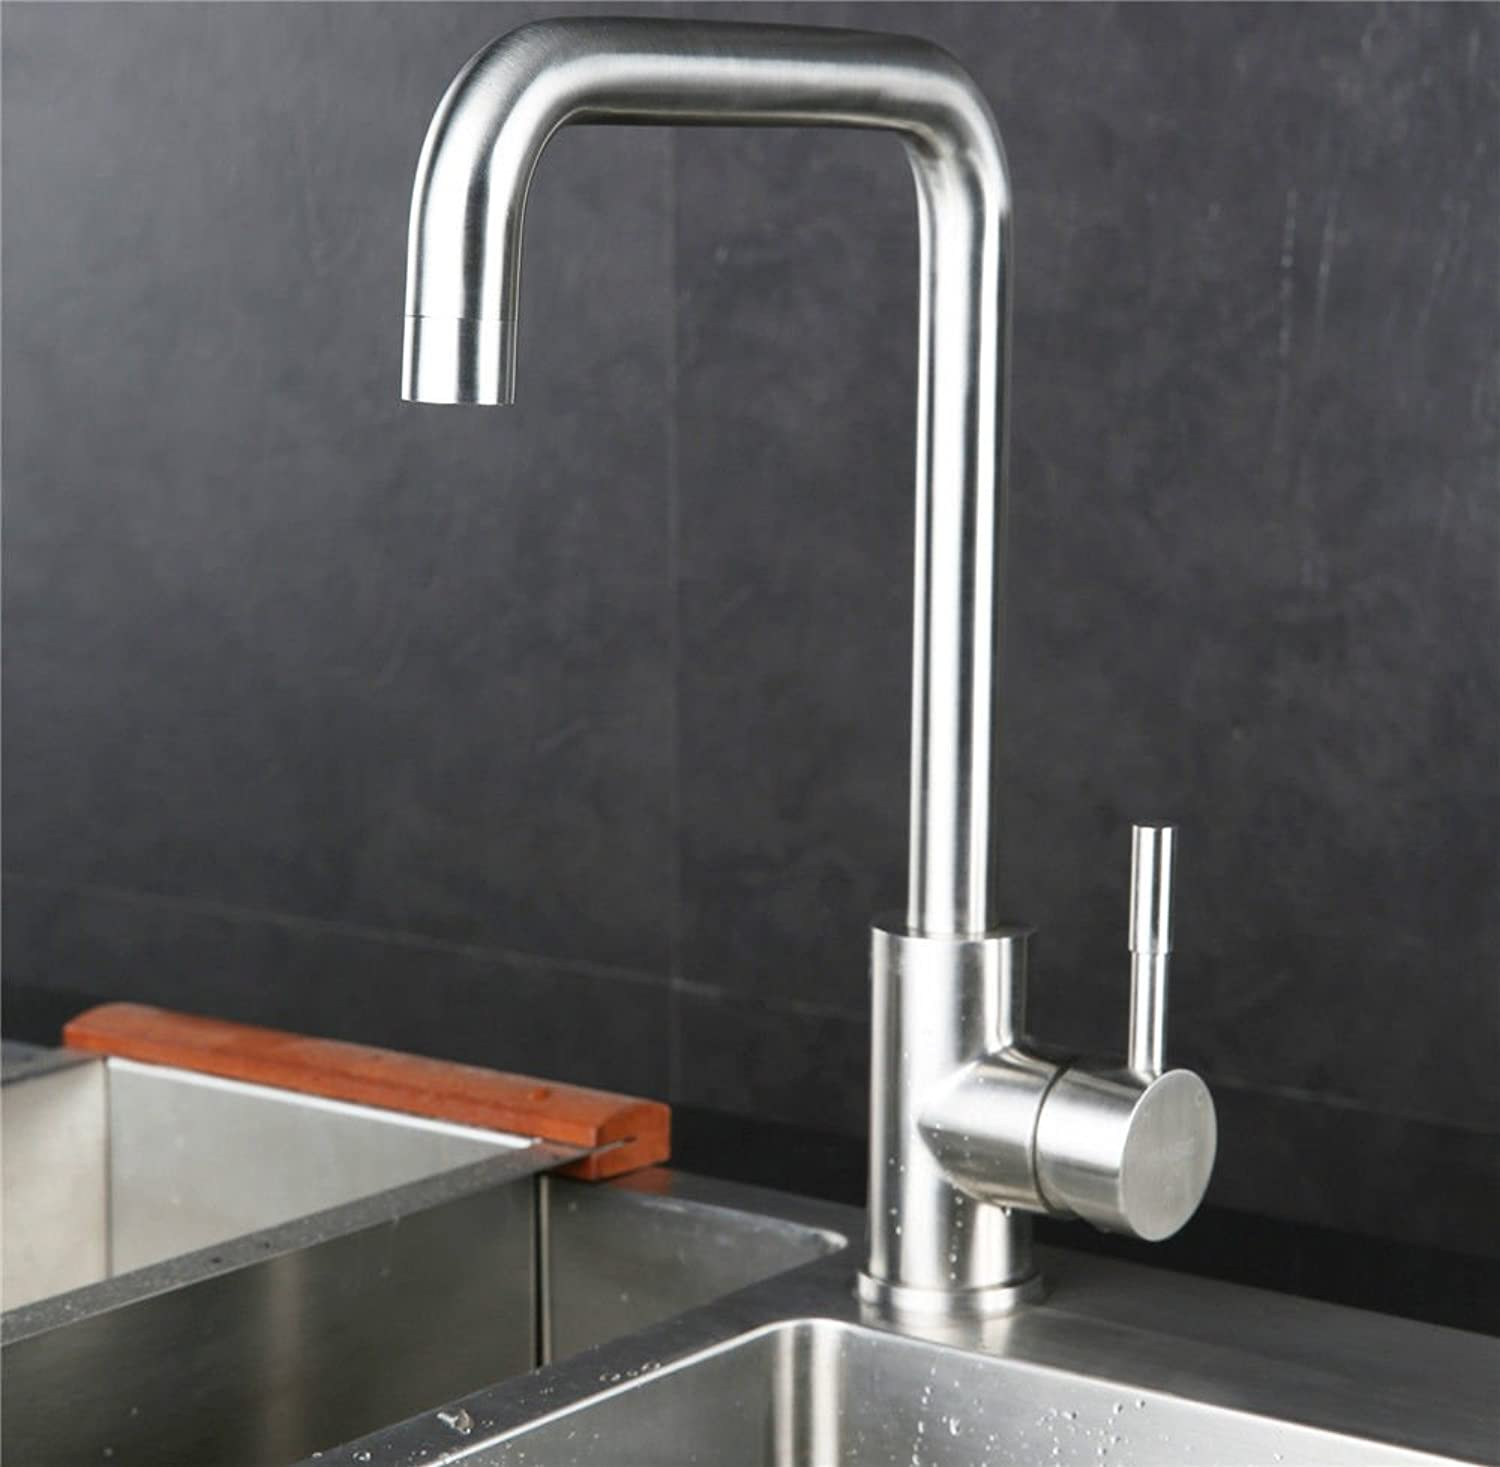 Commercial Single Lever Pull Down Kitchen Sink Faucet Brass Constructed Polished Kaiping Faucet Mixer Faucet 304 Stainless Steel Hot and Cold Water Faucet Kitchen Quick Opening Faucet